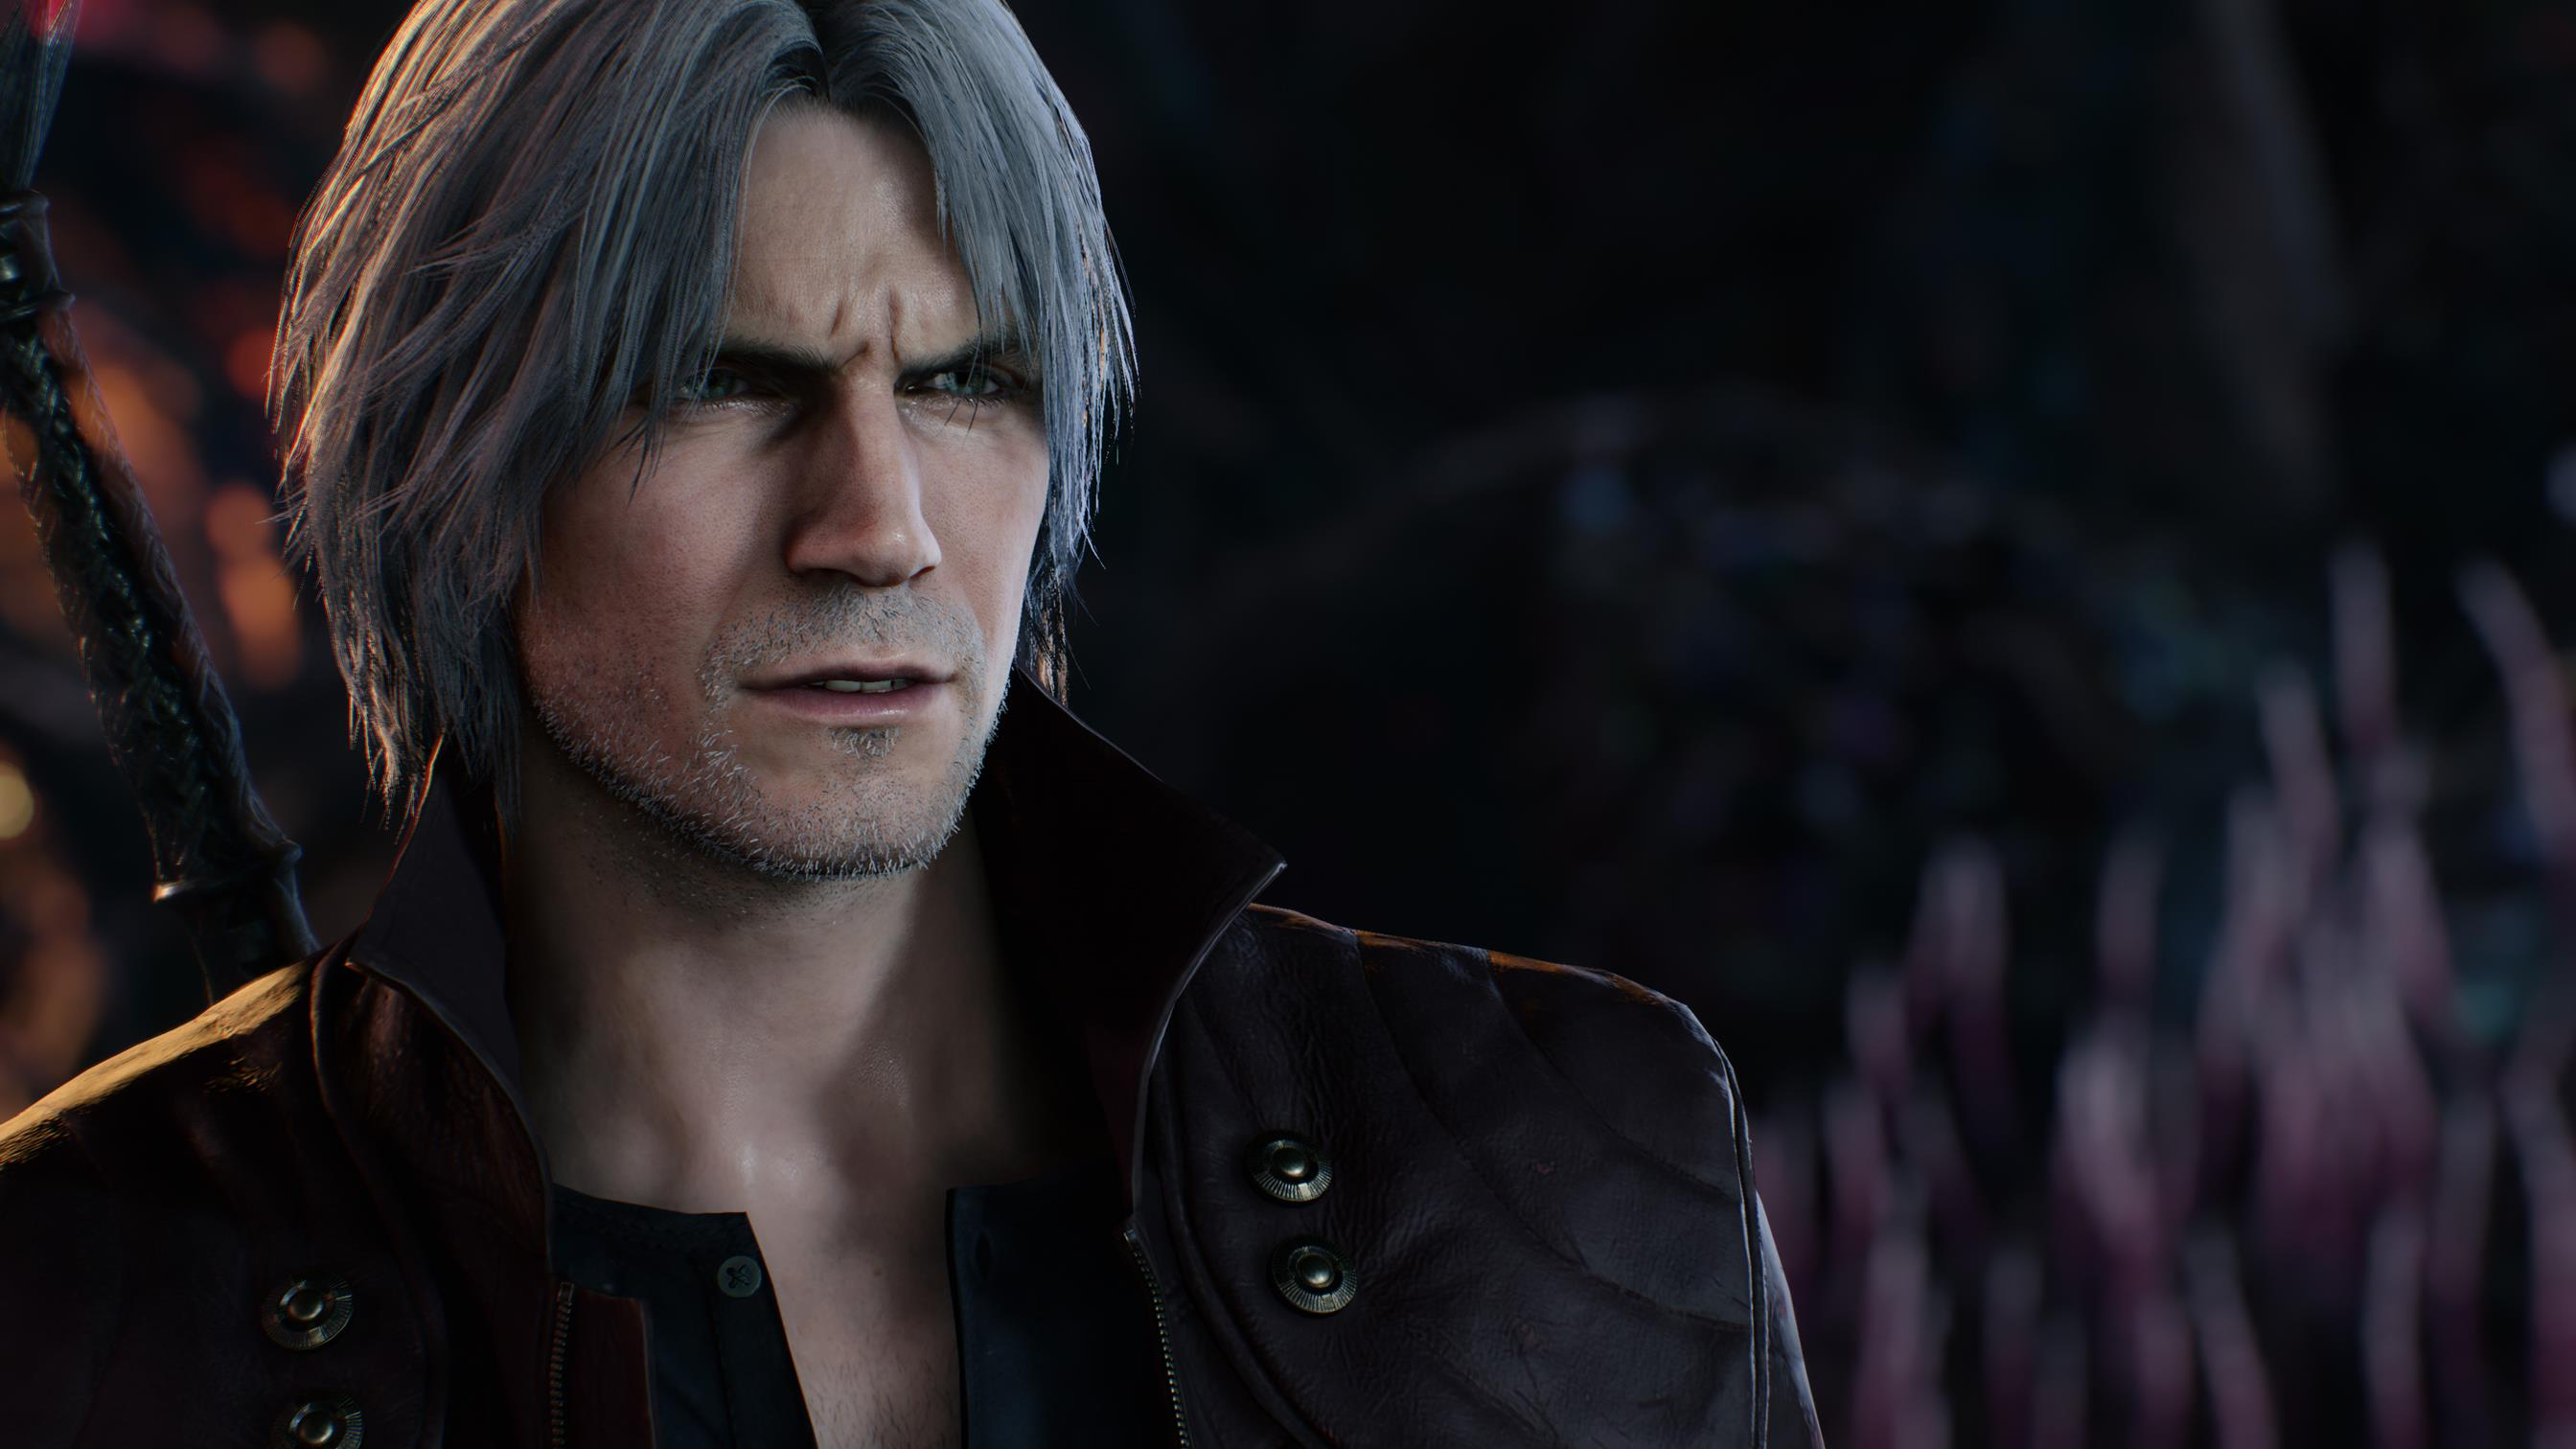 TGS 'Devil May Cry 5' Trailer Reveals a New Playable Character